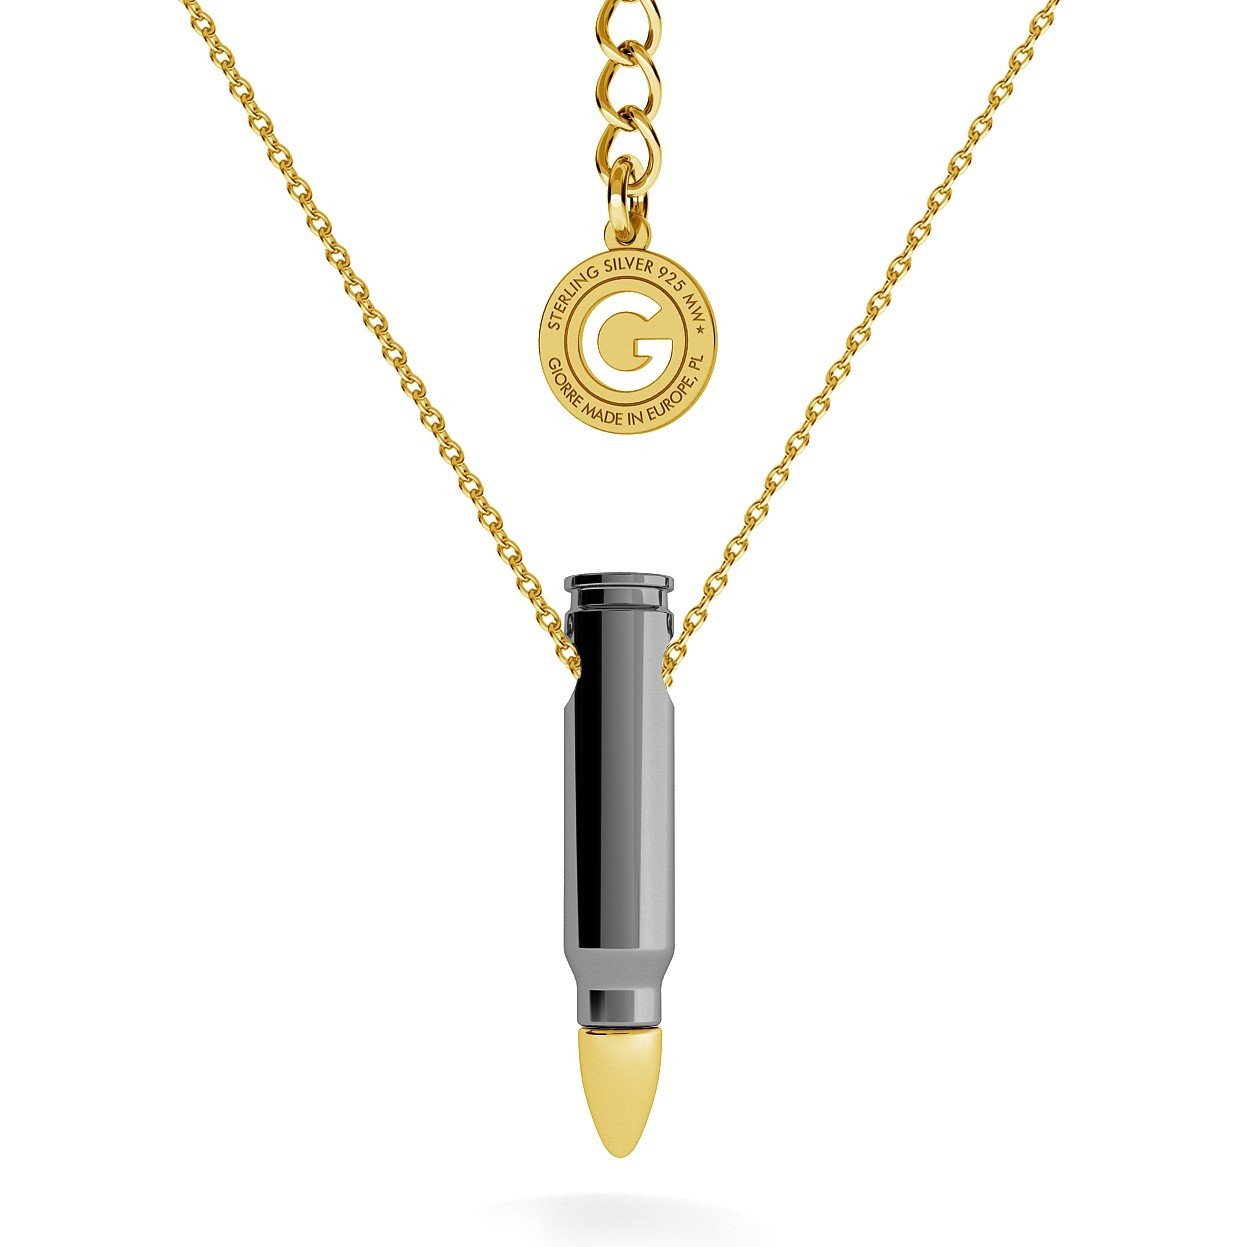 NECKLACE WITH BULLET - MODEL 2